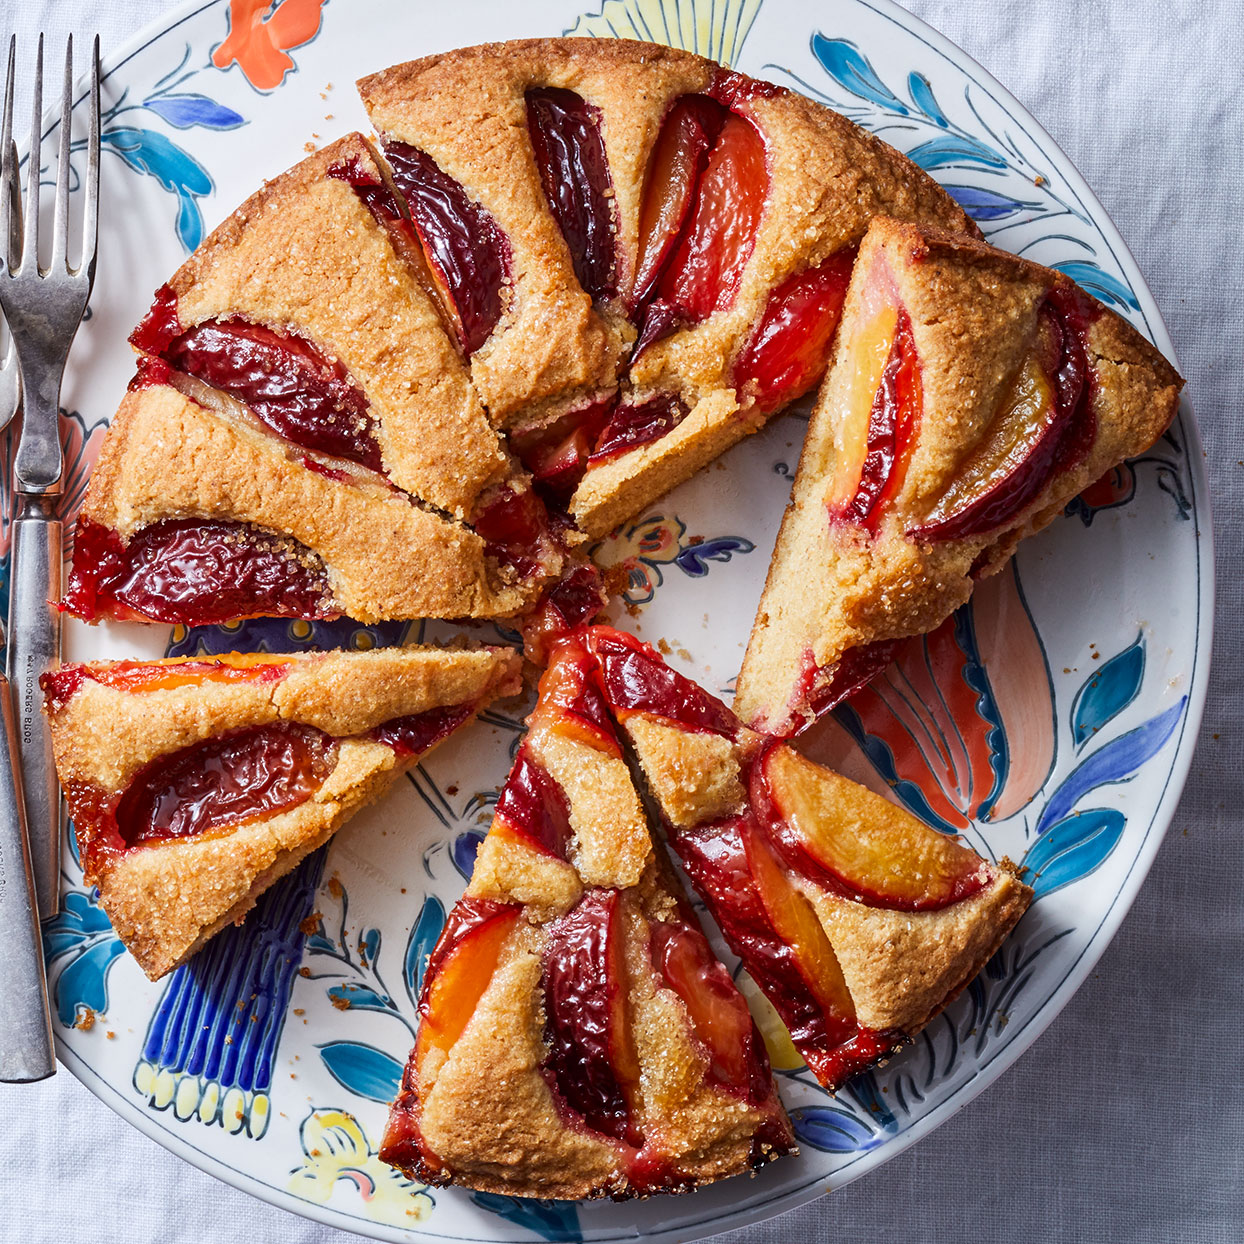 This fruit-topped cake got its name because of the way the batter buckles as it bakes. We omitted the traditional crumb topping to let this plum cake shine.